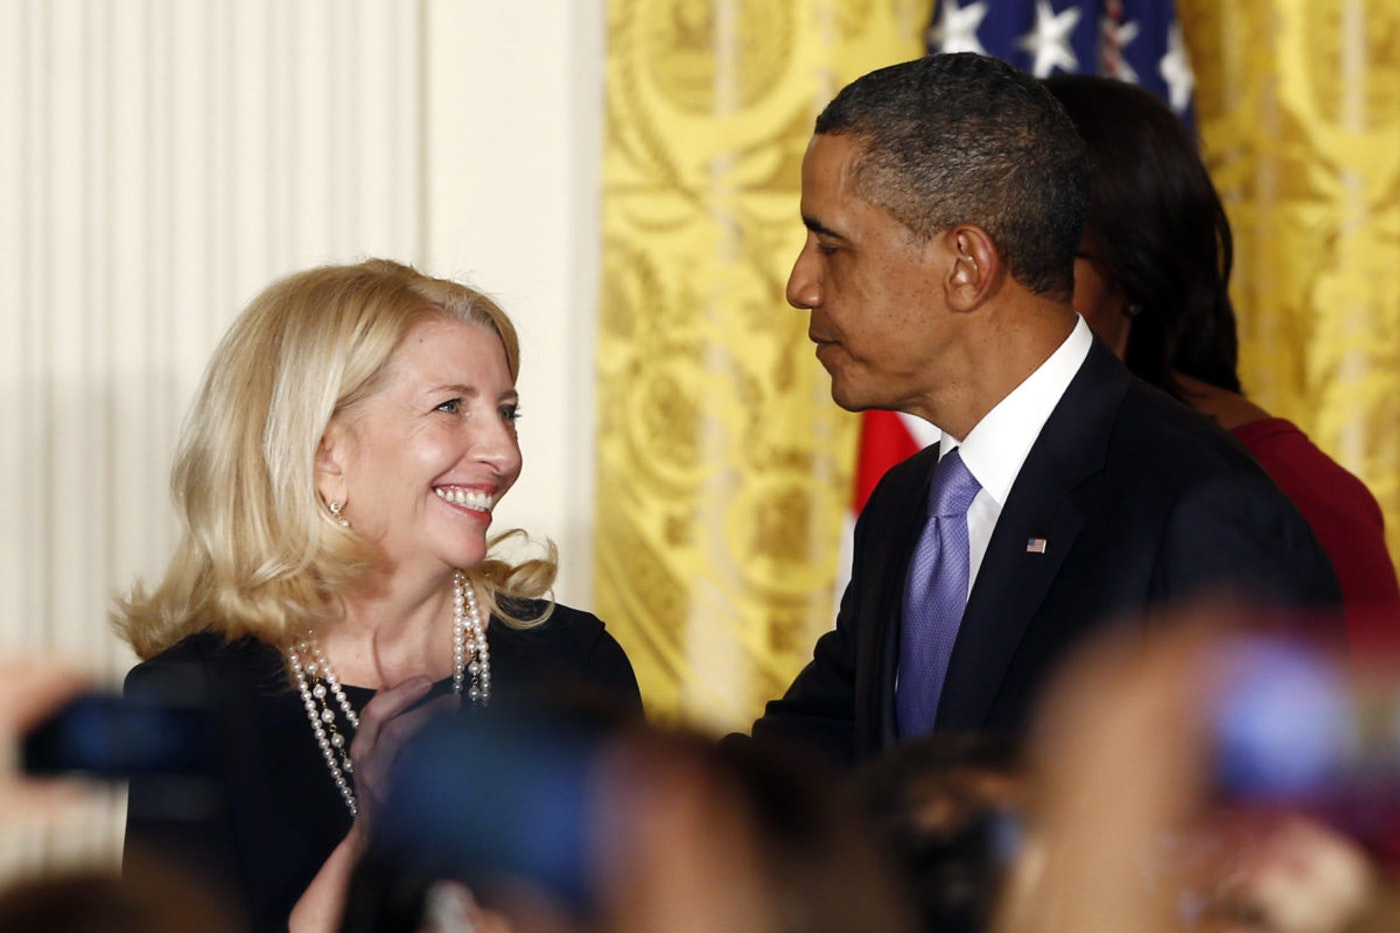 President Barack Obama congratulates Cathy Russell after he nominated her for the position of Ambassador at Large for Global Women's Issues at a Women's History Month reception in the East Room at the White House in Washington, Monday, March 18, 2013. (AP Photo/Charles Dharapak)